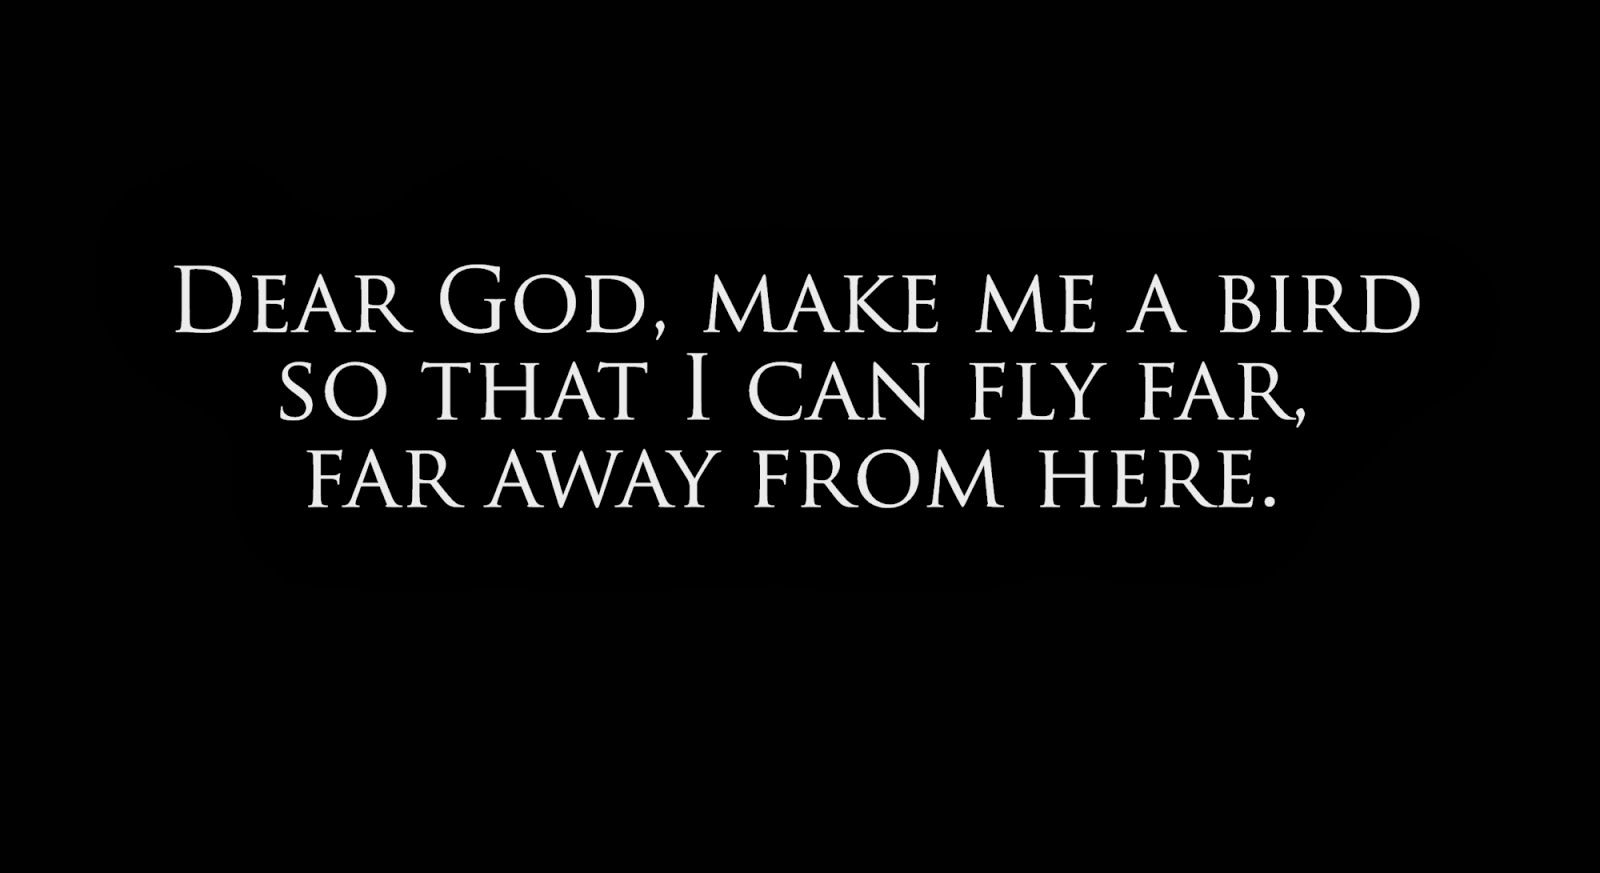 Dear God, make me a bird so that I can fly far, far away from here..